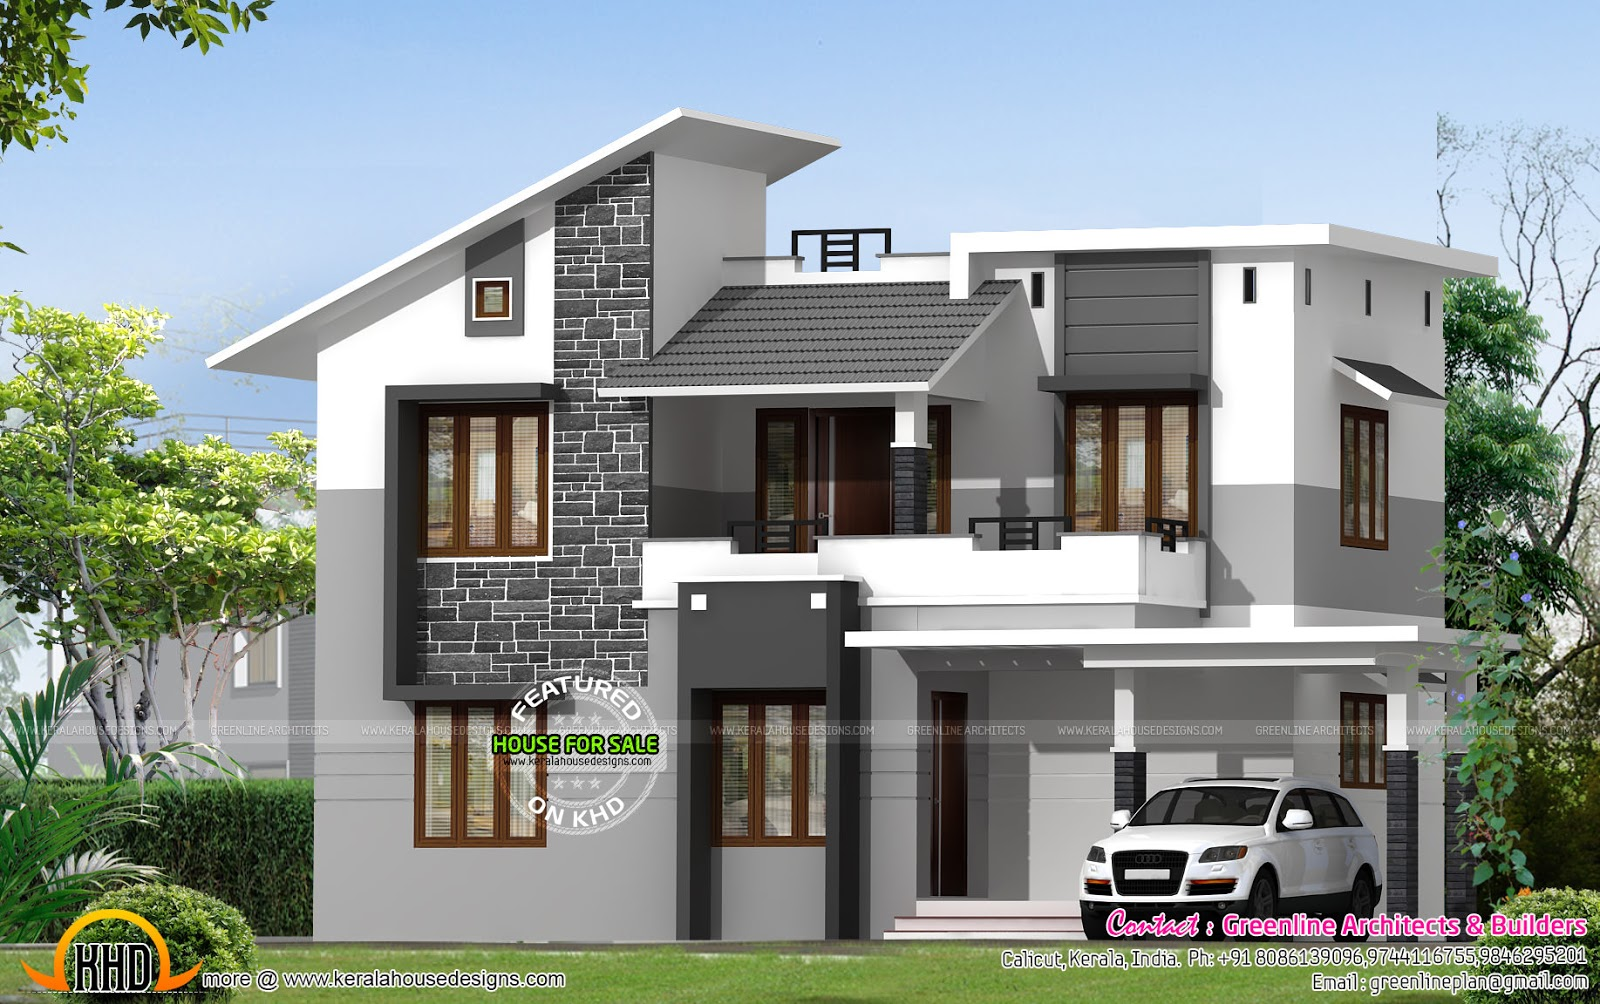 2 types of villa home plans kerala home design and floor for Architect house plans for sale